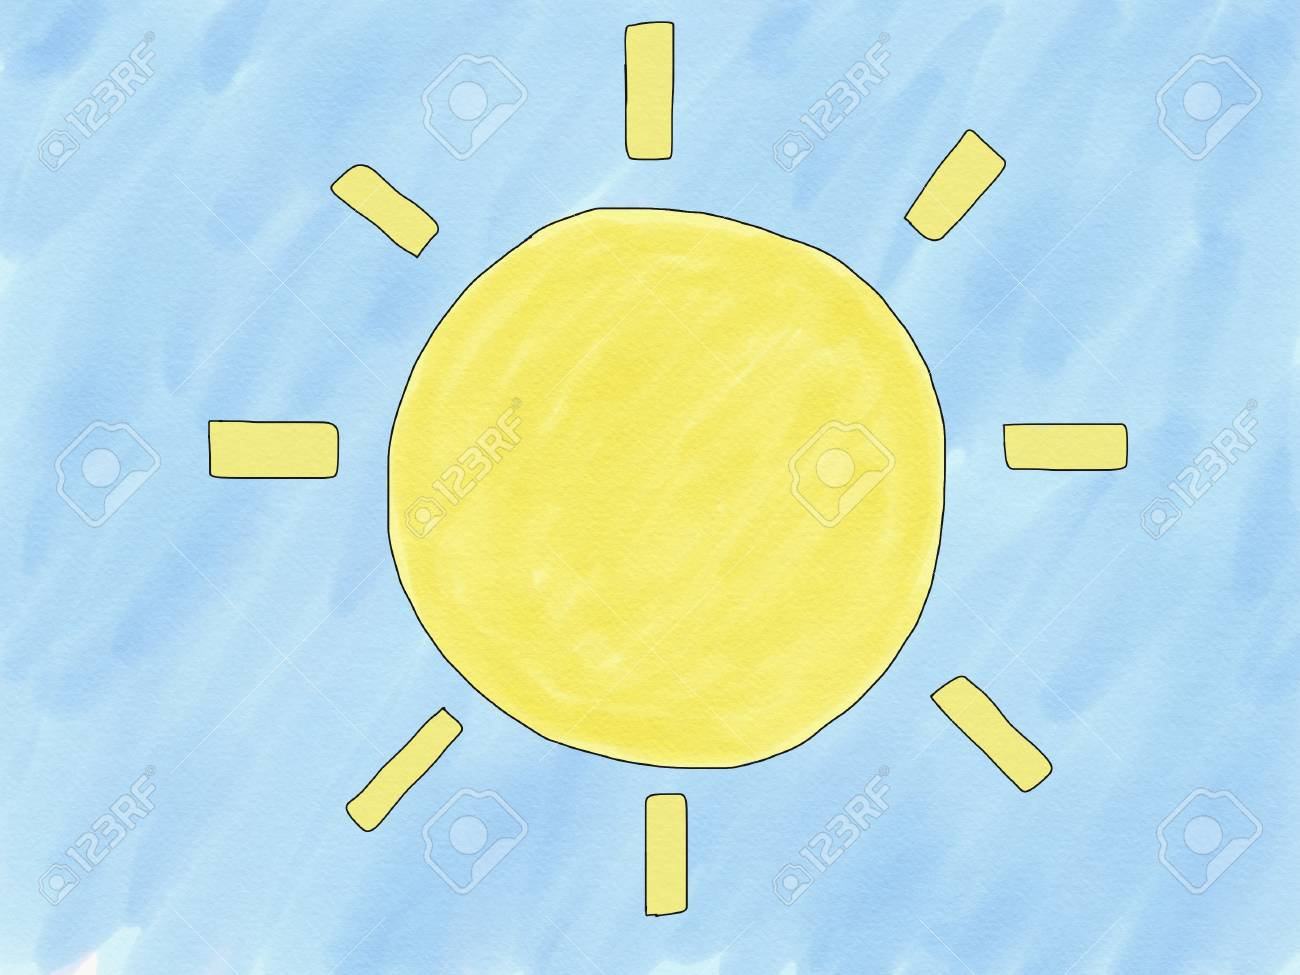 How To Draw The Sun Digital Art